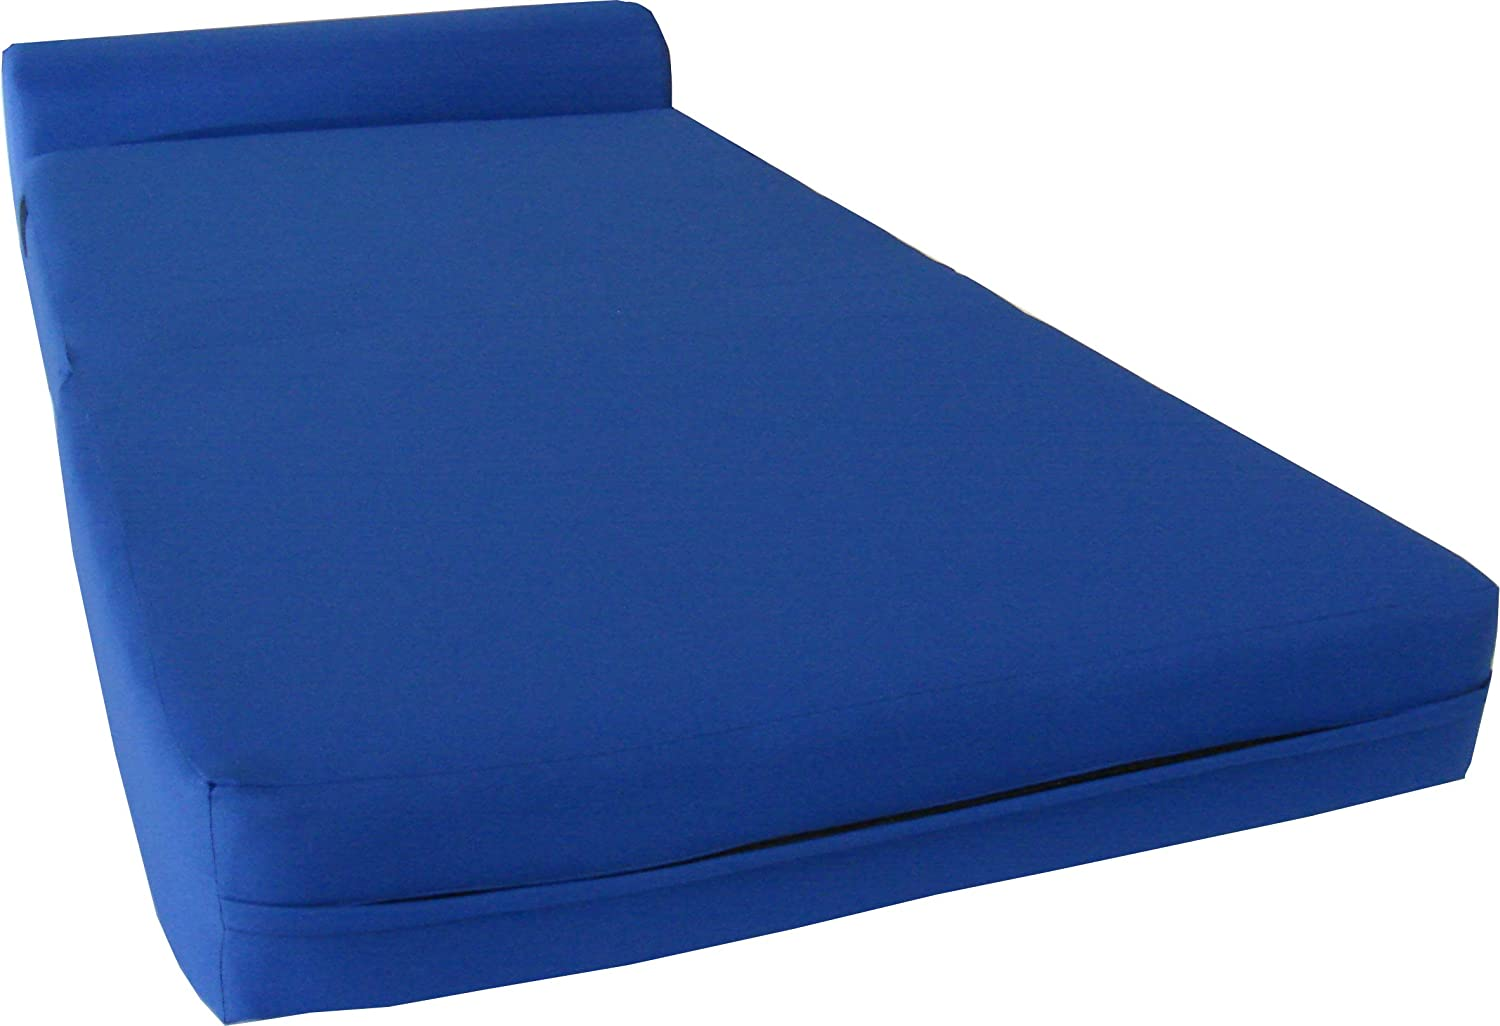 D D Futon Furniture Royal Blue Sleeper Chair Folding Foam Bed Sized 6 Thick X 32 Wide X 70 Long, Studio Guest Foldable Chair Beds, Foam Sofa, Couch, High Density Foam 1.8 Pounds.